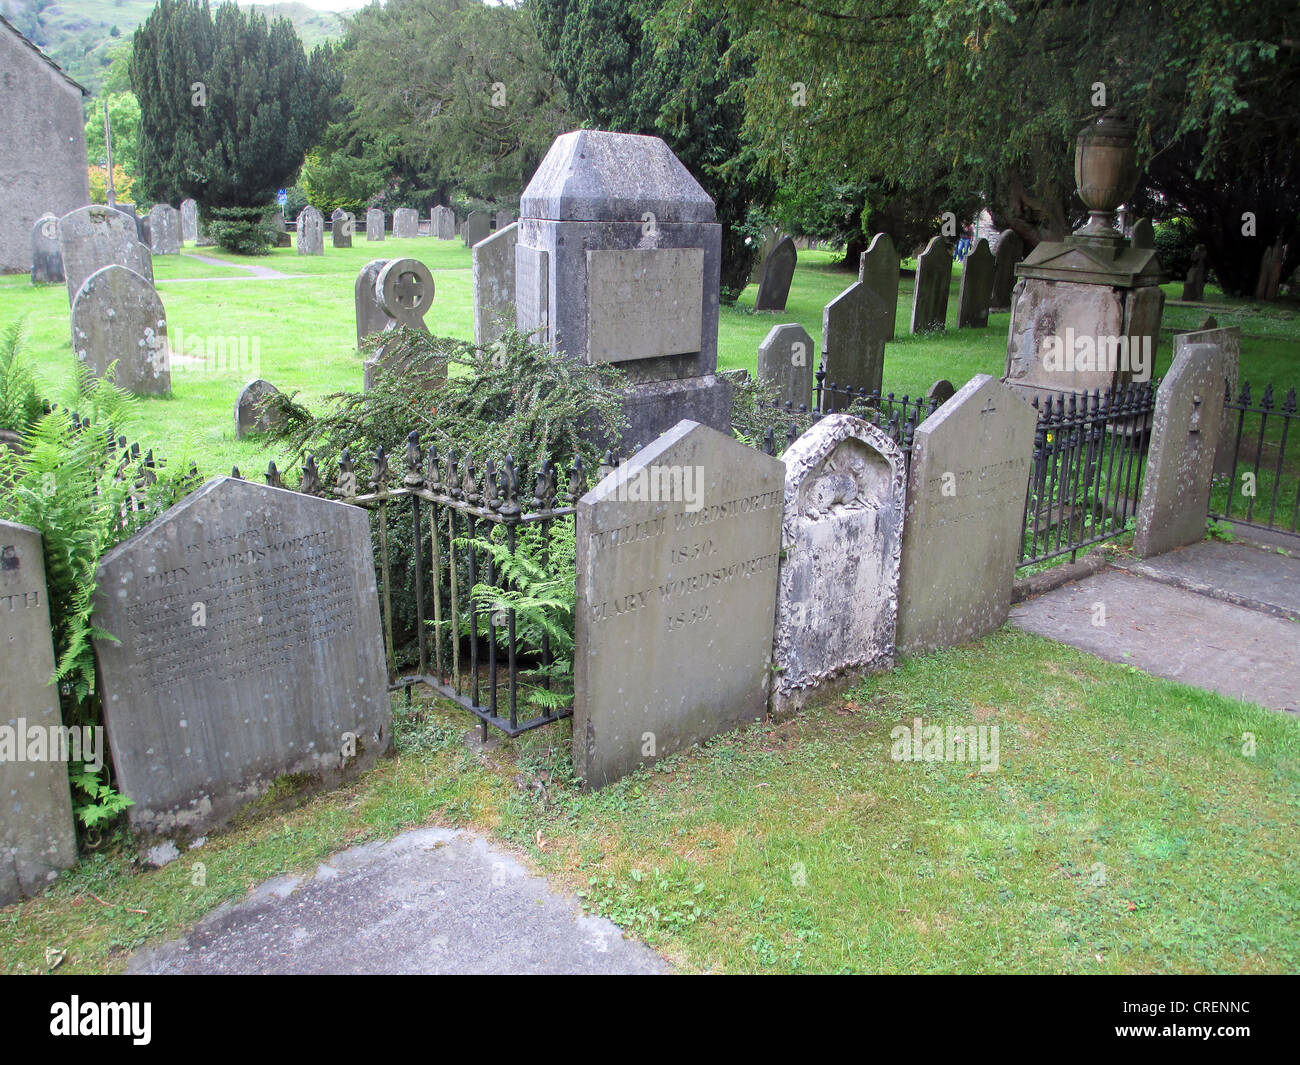 WILLIAM WORDSWORTH (1770-1850)  Burial site of the Wordsworth family at St. Oswald's Church, Grasmere, Cumbria. - Stock Image